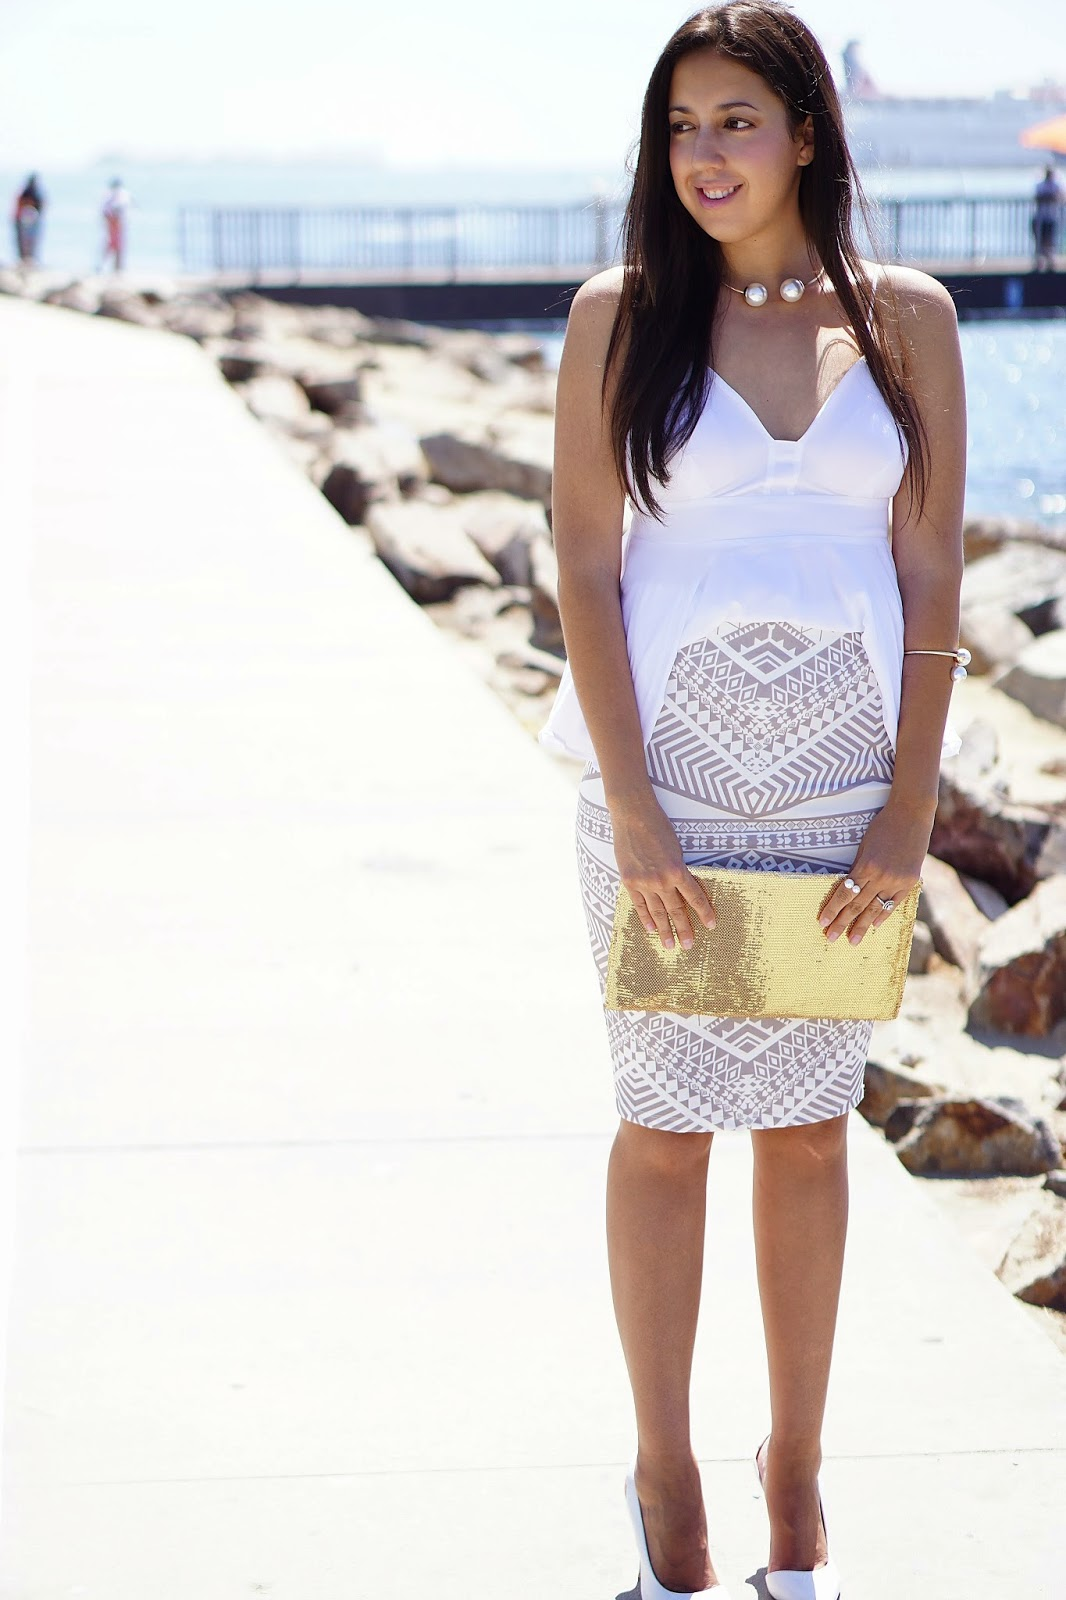 Express Babydoll Cami, Kardashian Kollection Skirt, Shoemint Teo Heels, Forever 21, Gold Clutch, Pearl Choker, Pearl Bangle, Pearl Open Ring, Kohls, White heels